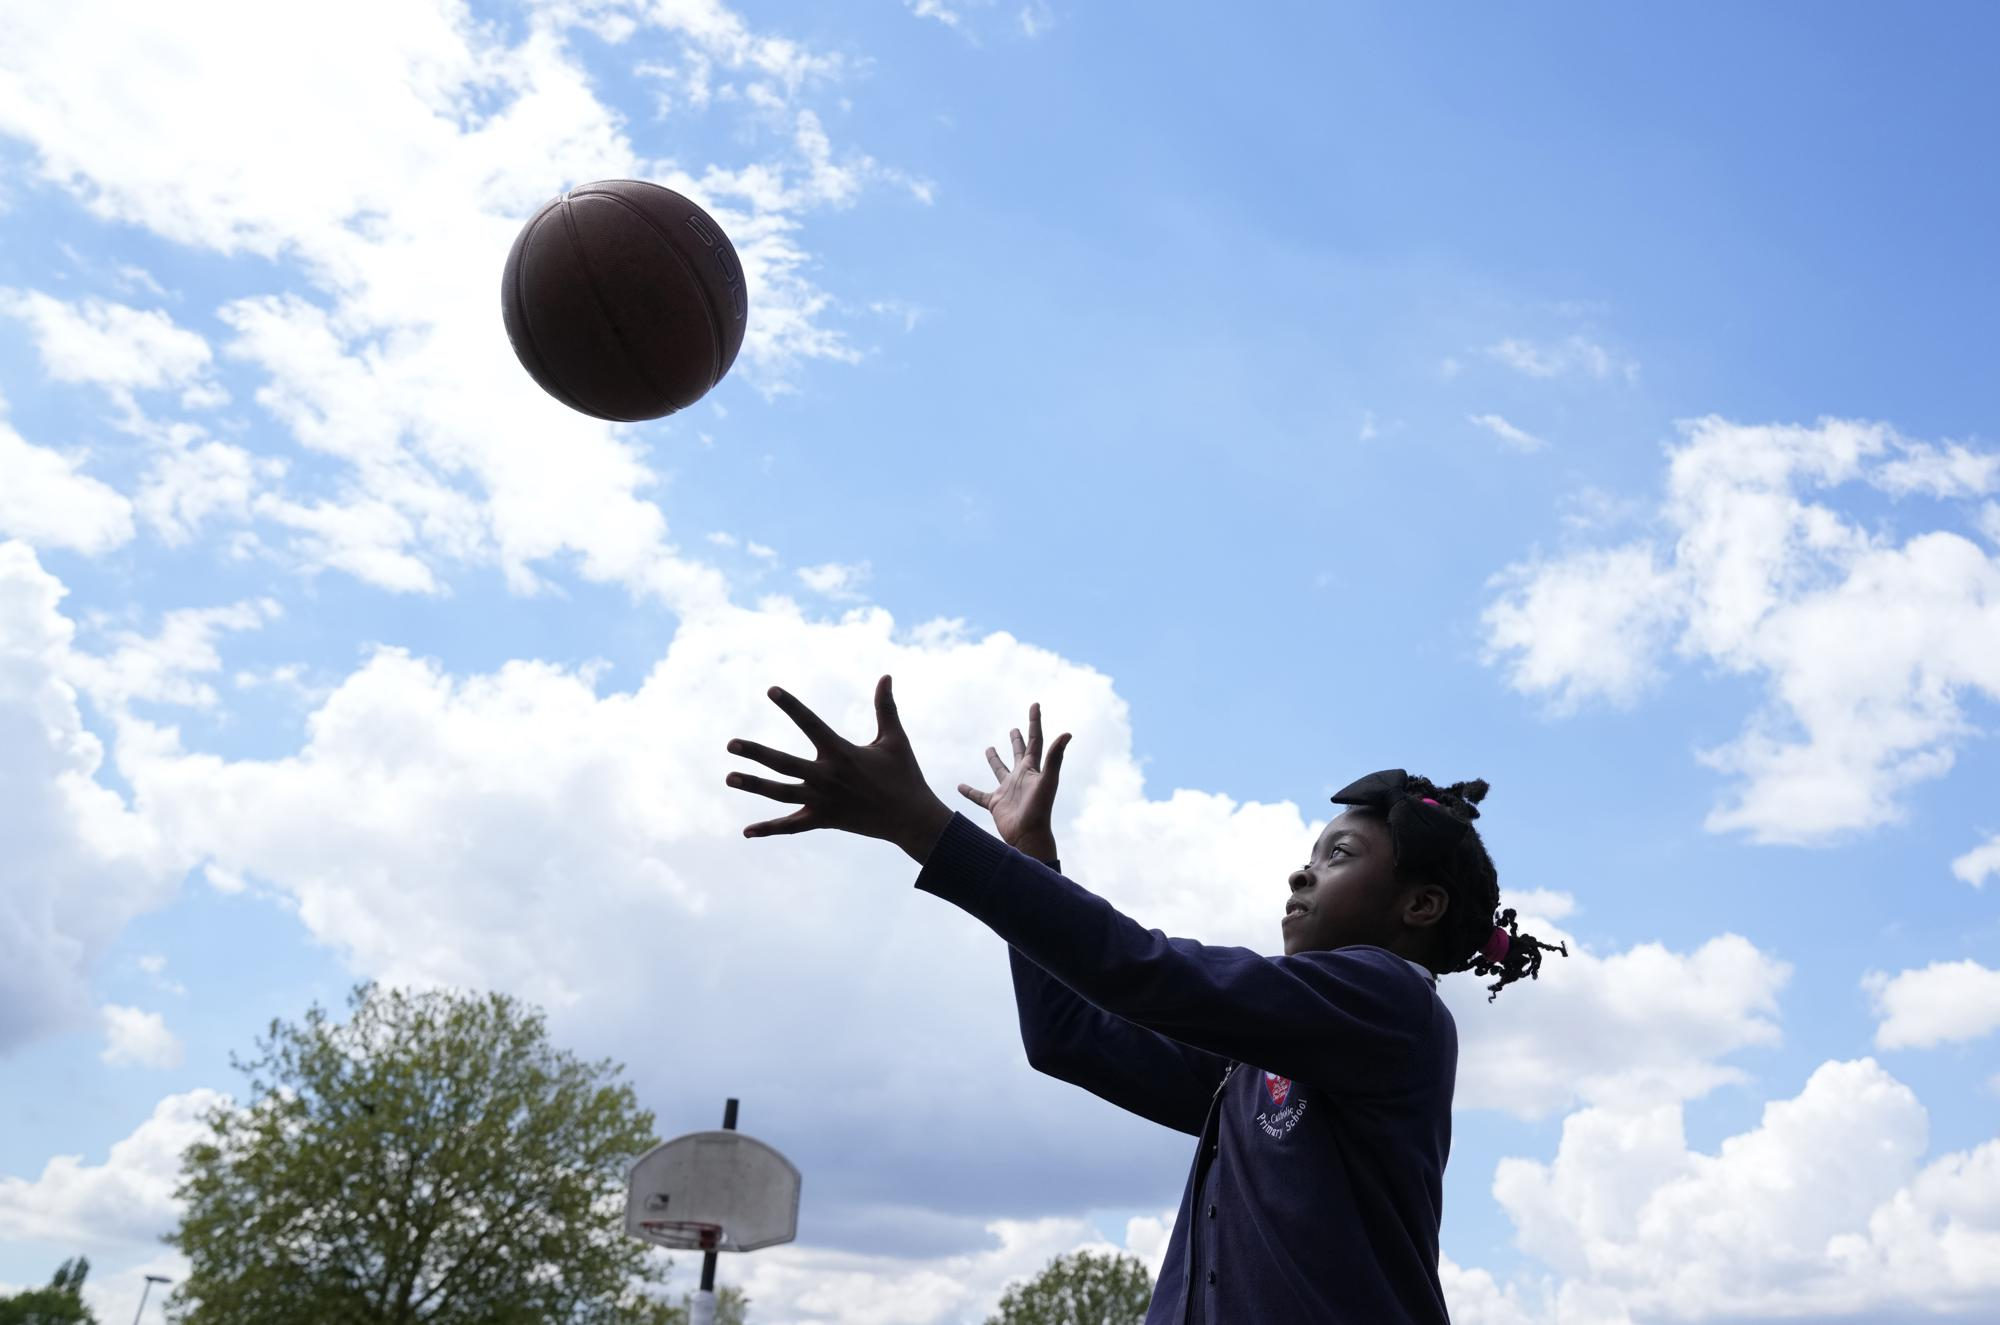 Ayomide plays catch in the playground of the Holy Family Catholic Primary School in Greenwich, London, Wednesday, May 19, 2021. (AP Photo/Alastair Grant)